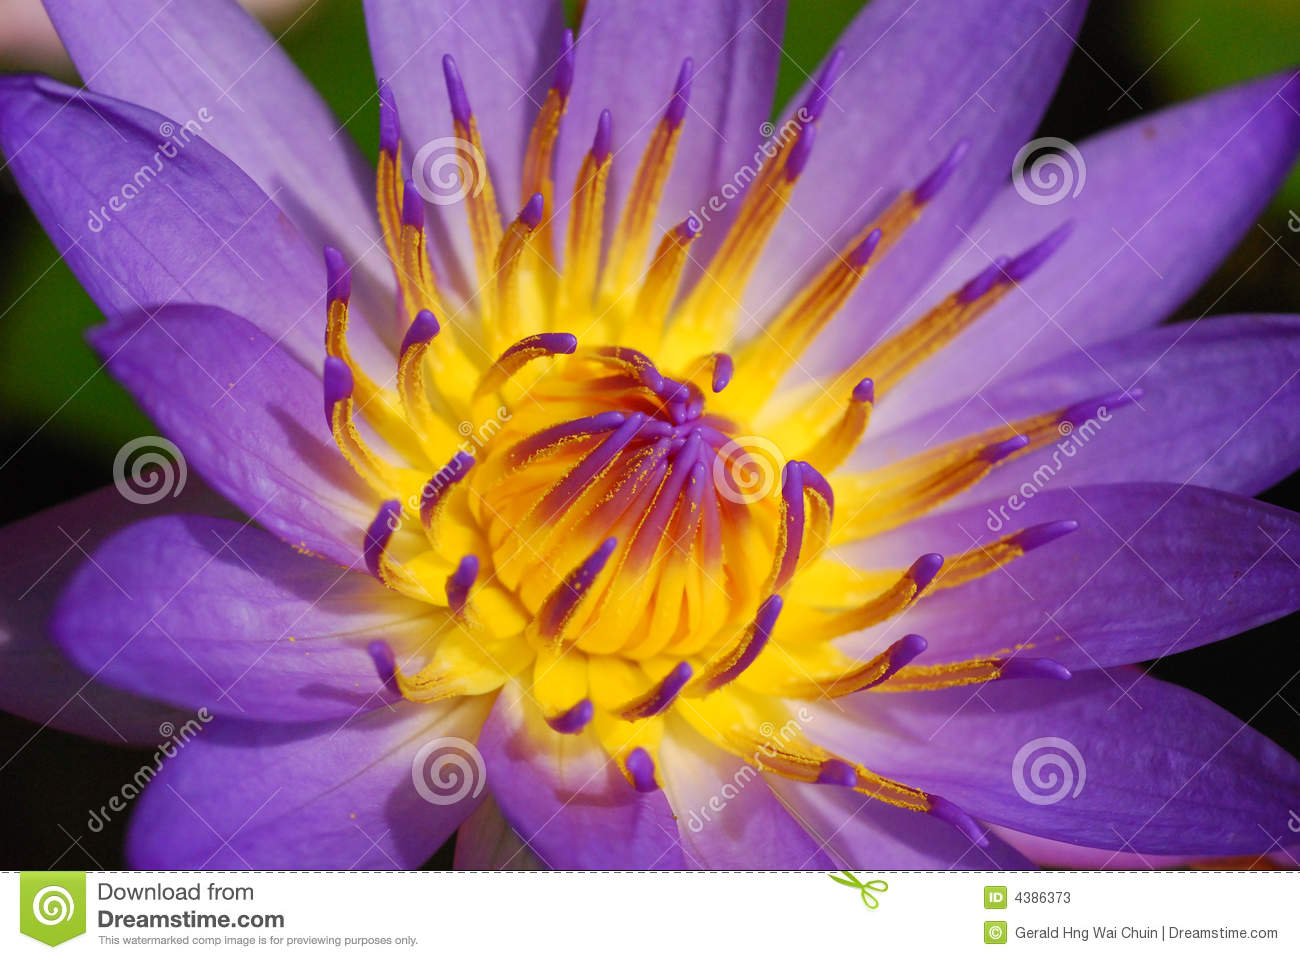 Purple lotus lily stock image image of lotus lake 4386373 a water lotus in full bloom one of the most beautiful flowers in existance this pink variant was taken in a middle of a pond somewhere in the rural izmirmasajfo